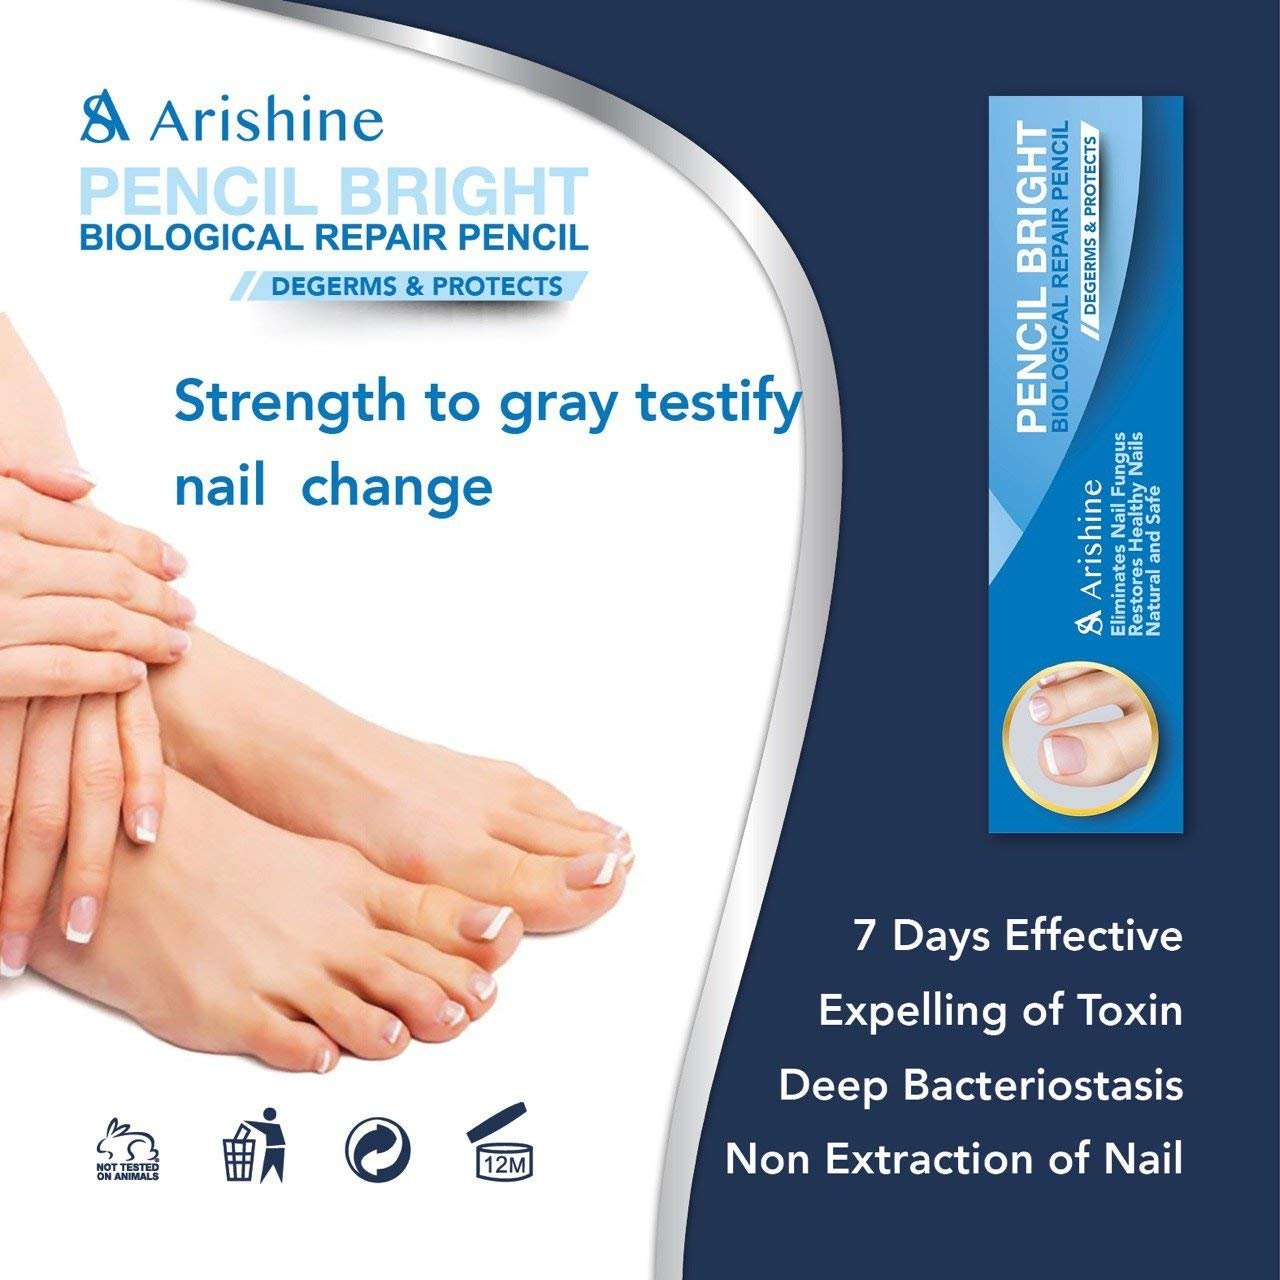 Arishine Toenail Fungus Treatment, Fungus Stop, Maximum Strength Anti-Fungal Nail Solution, Effective Against Nail Fungus, Anti-Fungal Toenails, Fingernails Solution, 4pcs